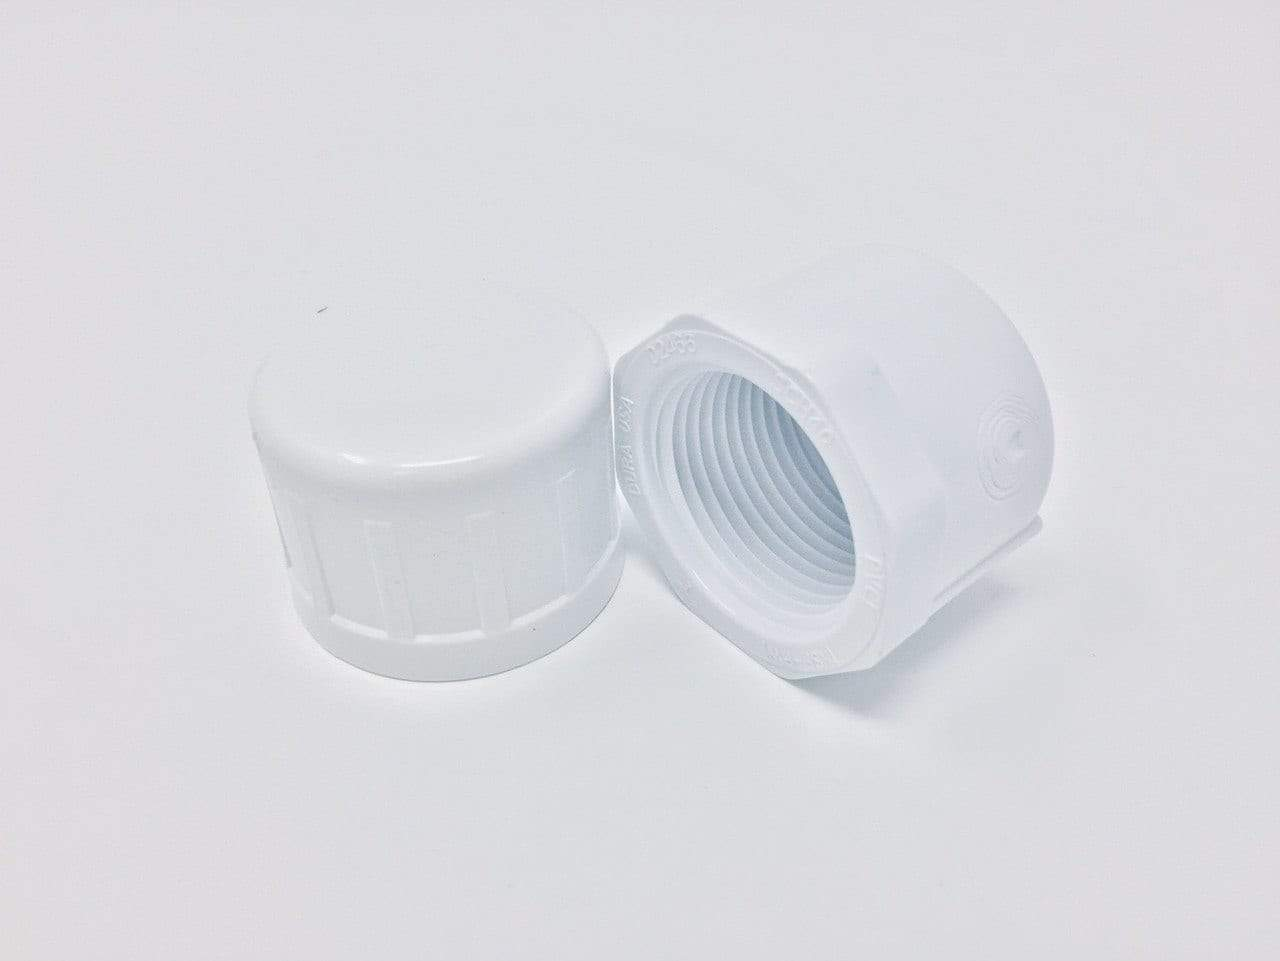 Dura - 1 Sch40 PVC Cap Threaded - 448-010